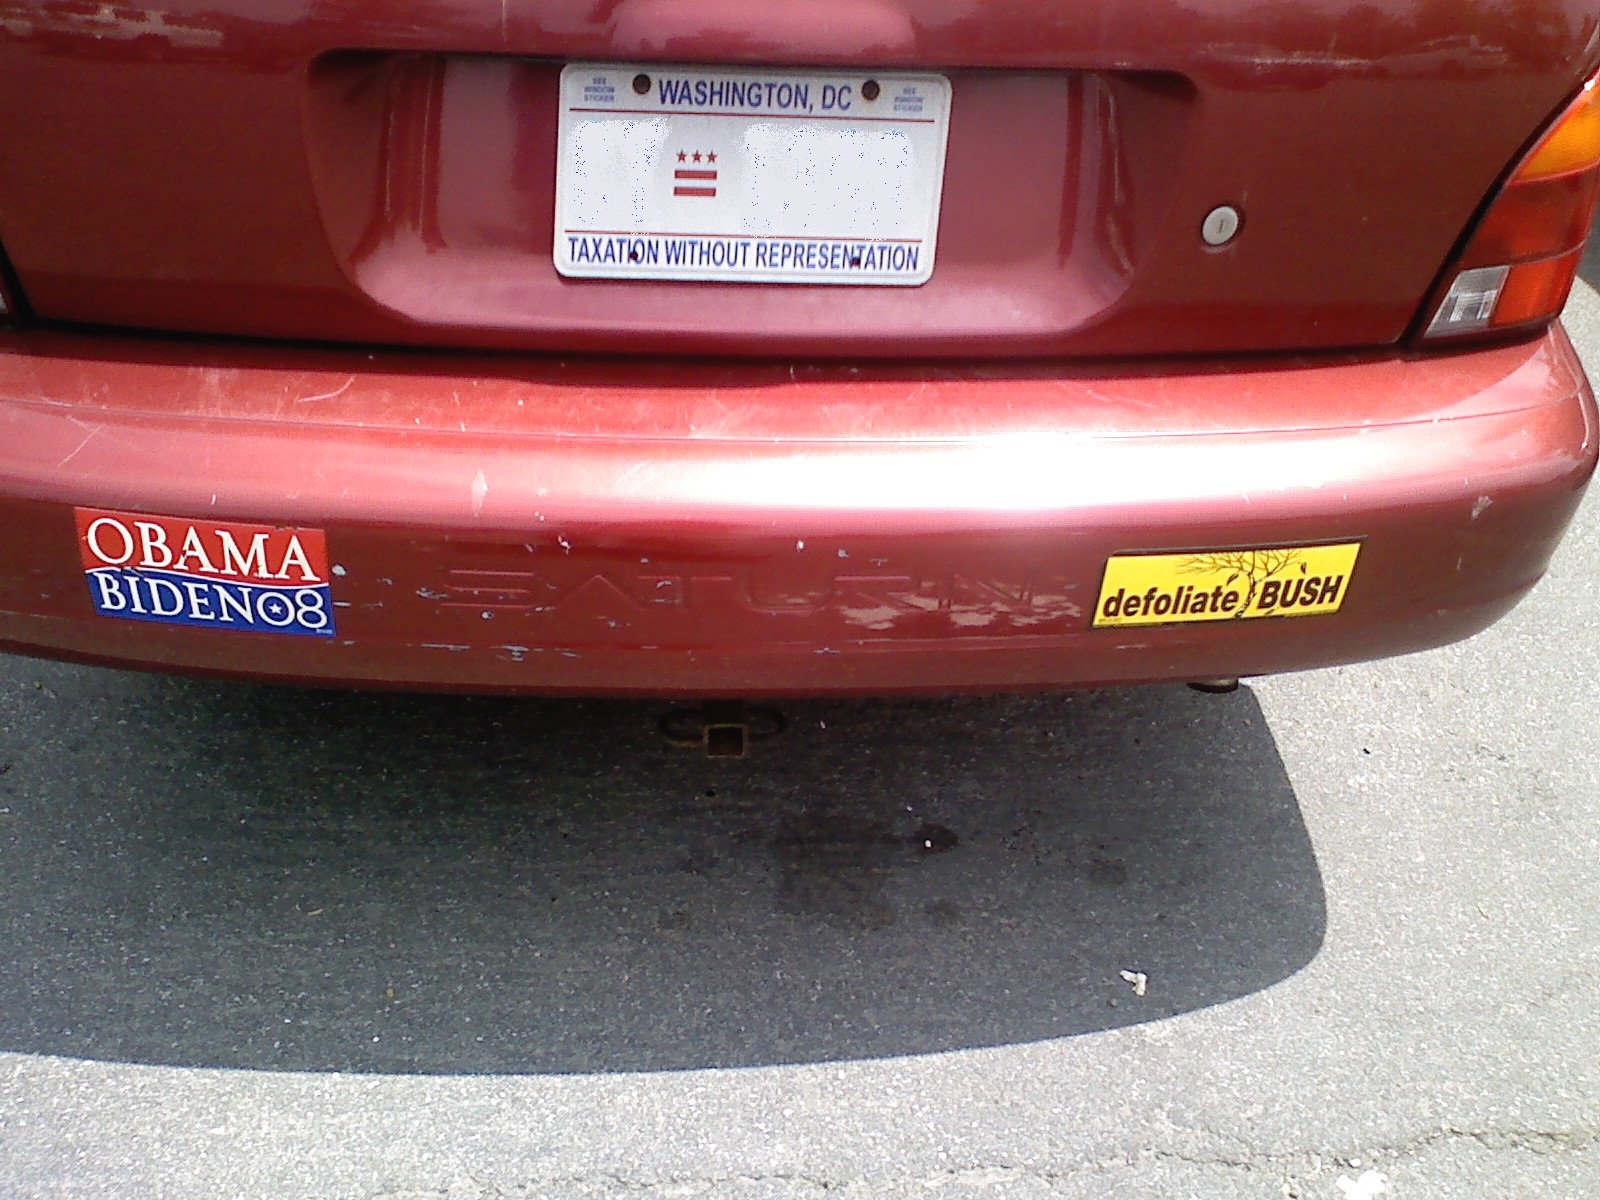 Hateful liberal bumper sticker of the day